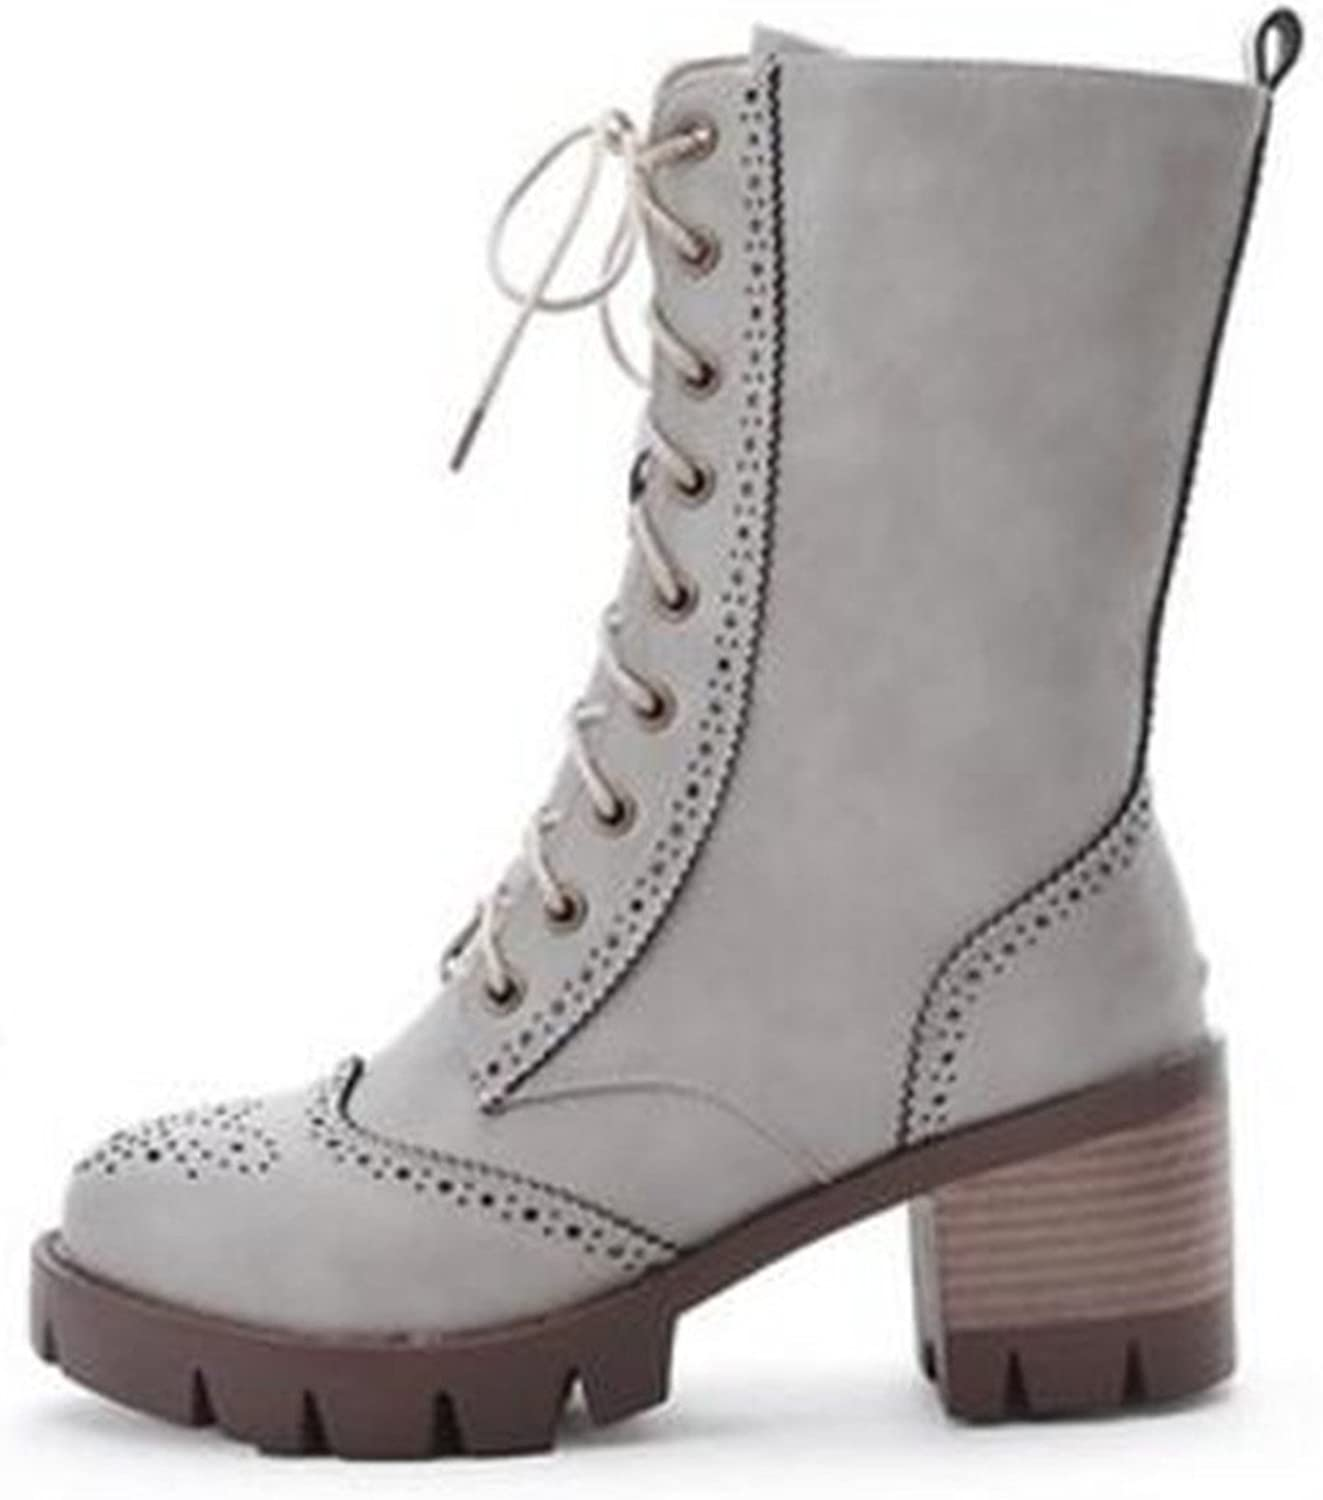 Robert Reyna Fashion Women's Round Toe Mid Calf Chunky Mid Heel Platform Lace-up Boots